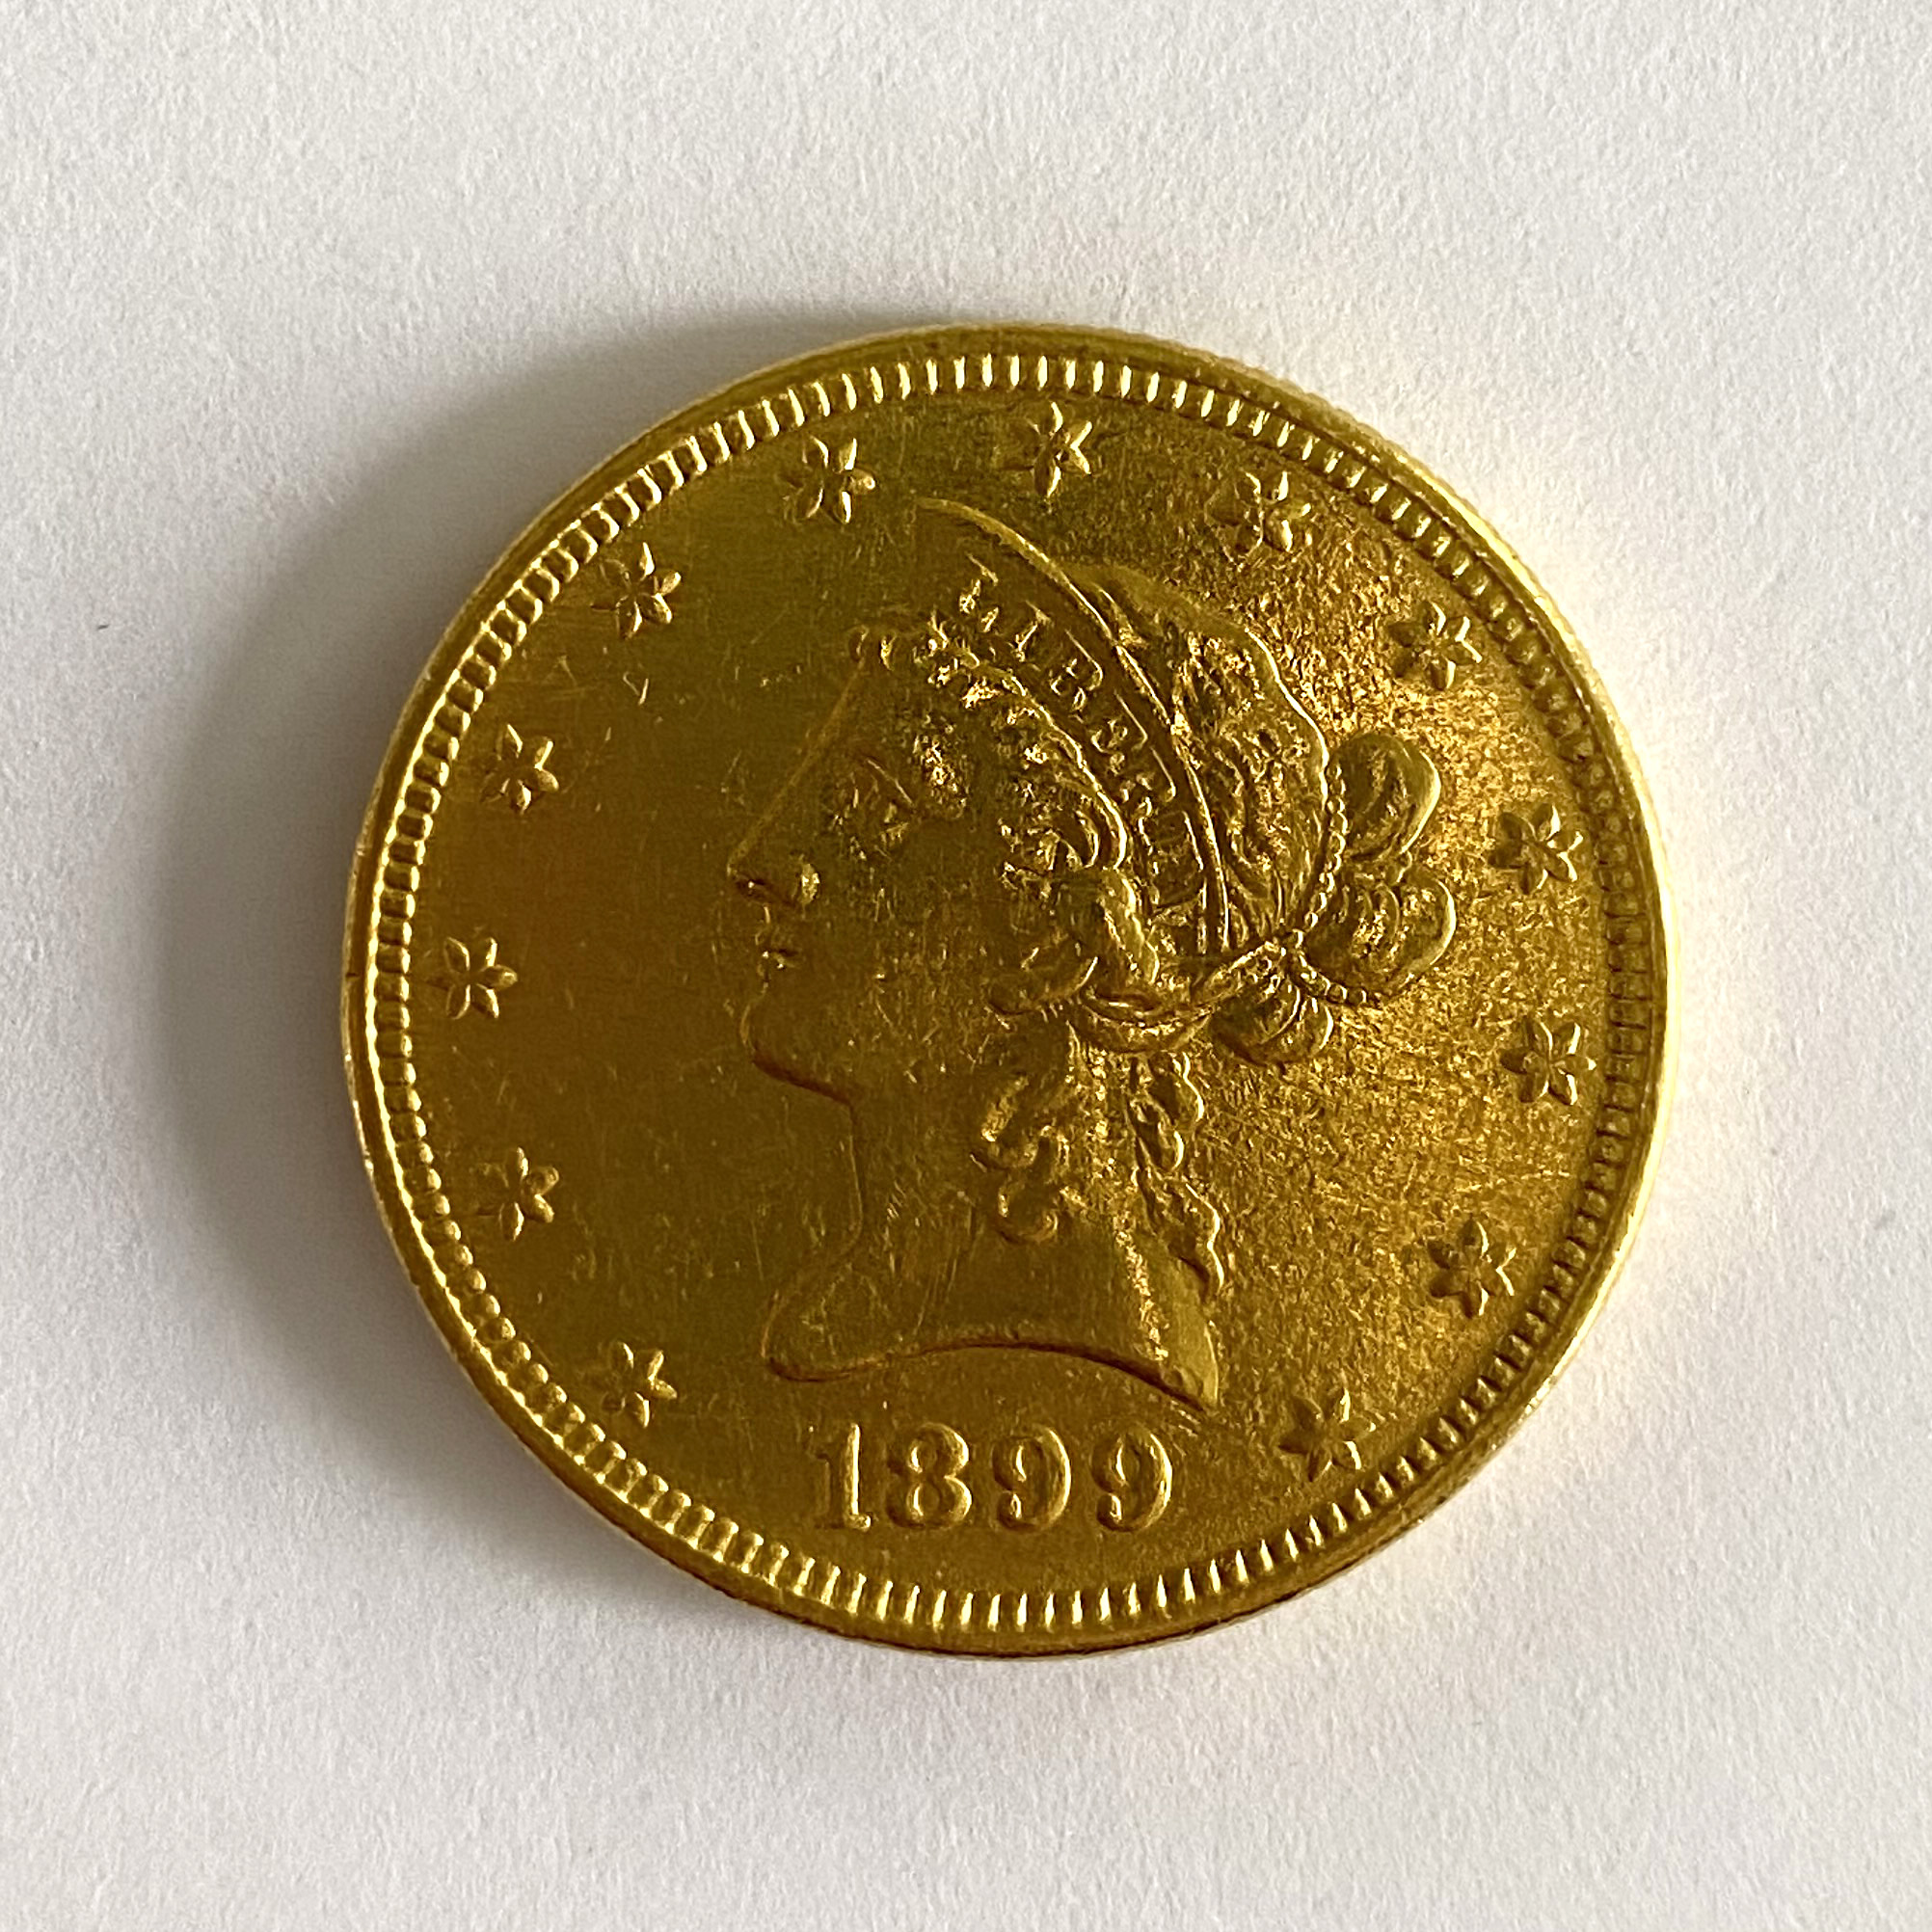 A United States of America $10 coin,